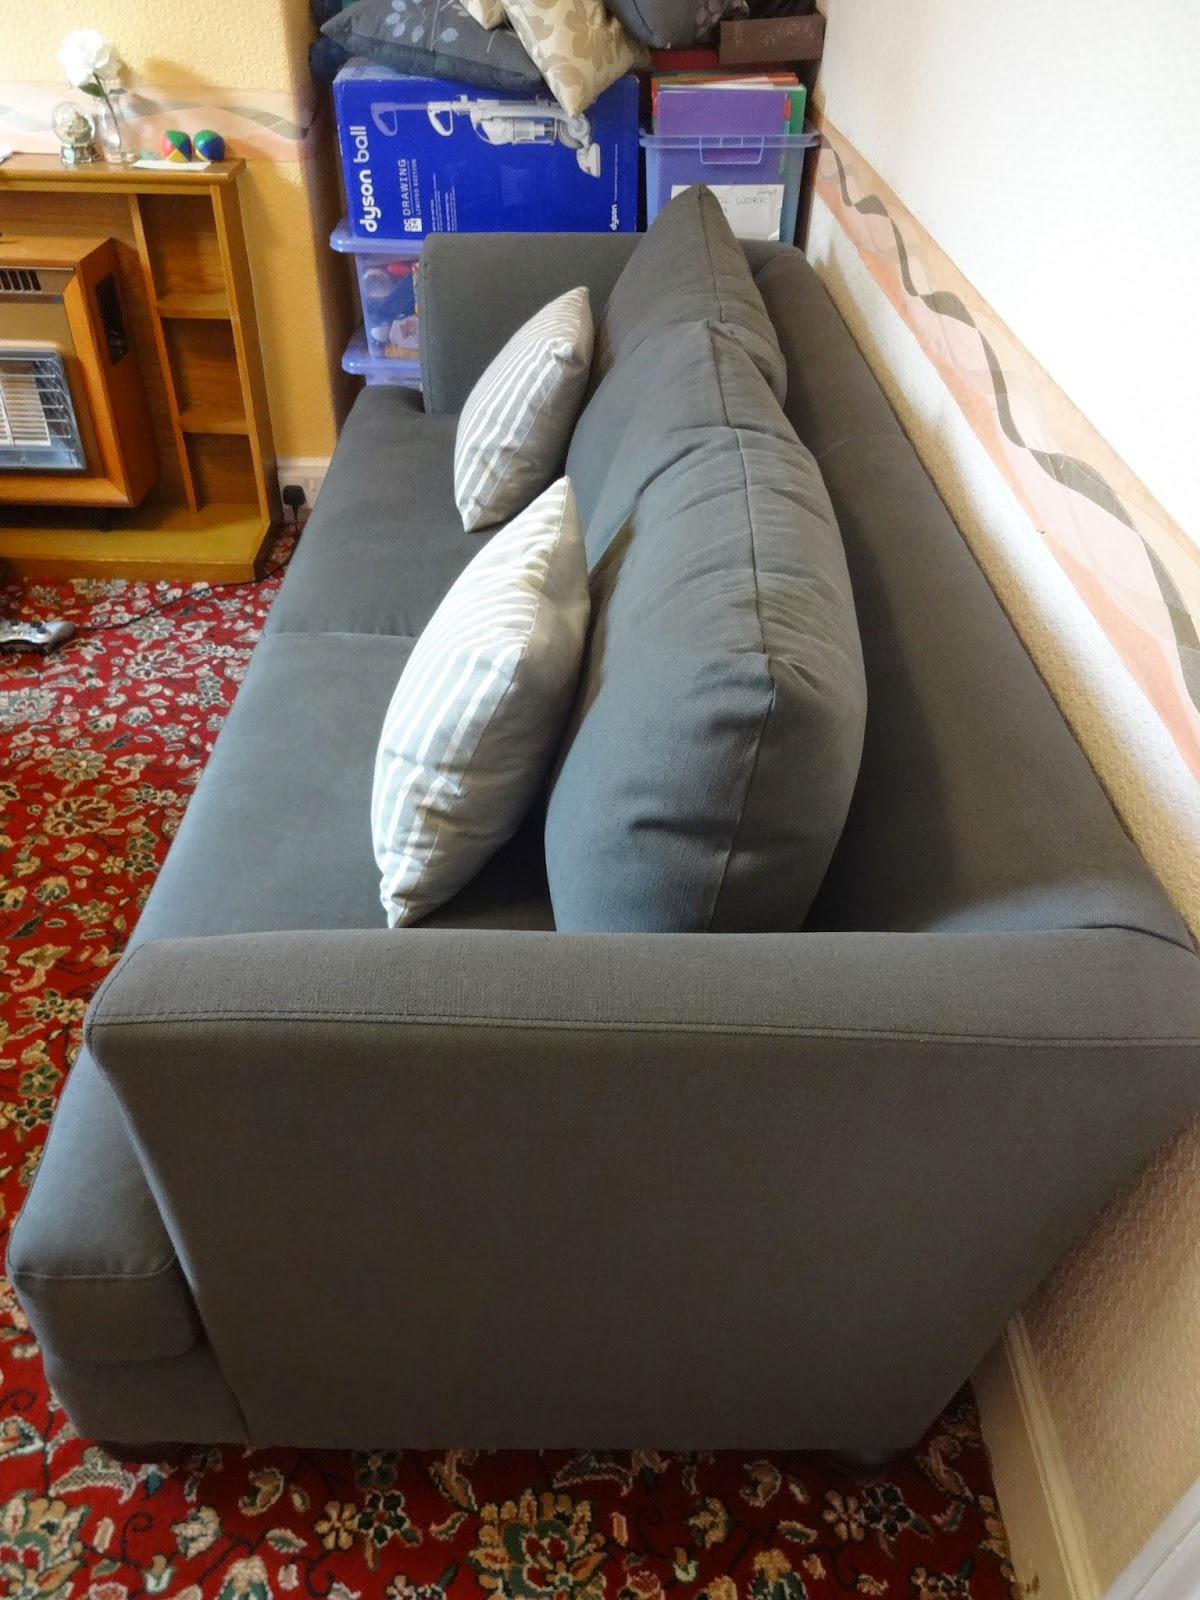 ... You Can Style It However You Please, Weu0027re Using The Smaller Cushions  As Arm Cushions, As I Tend To Sit On Sofas Sideways, With My Back Against  The Arm.